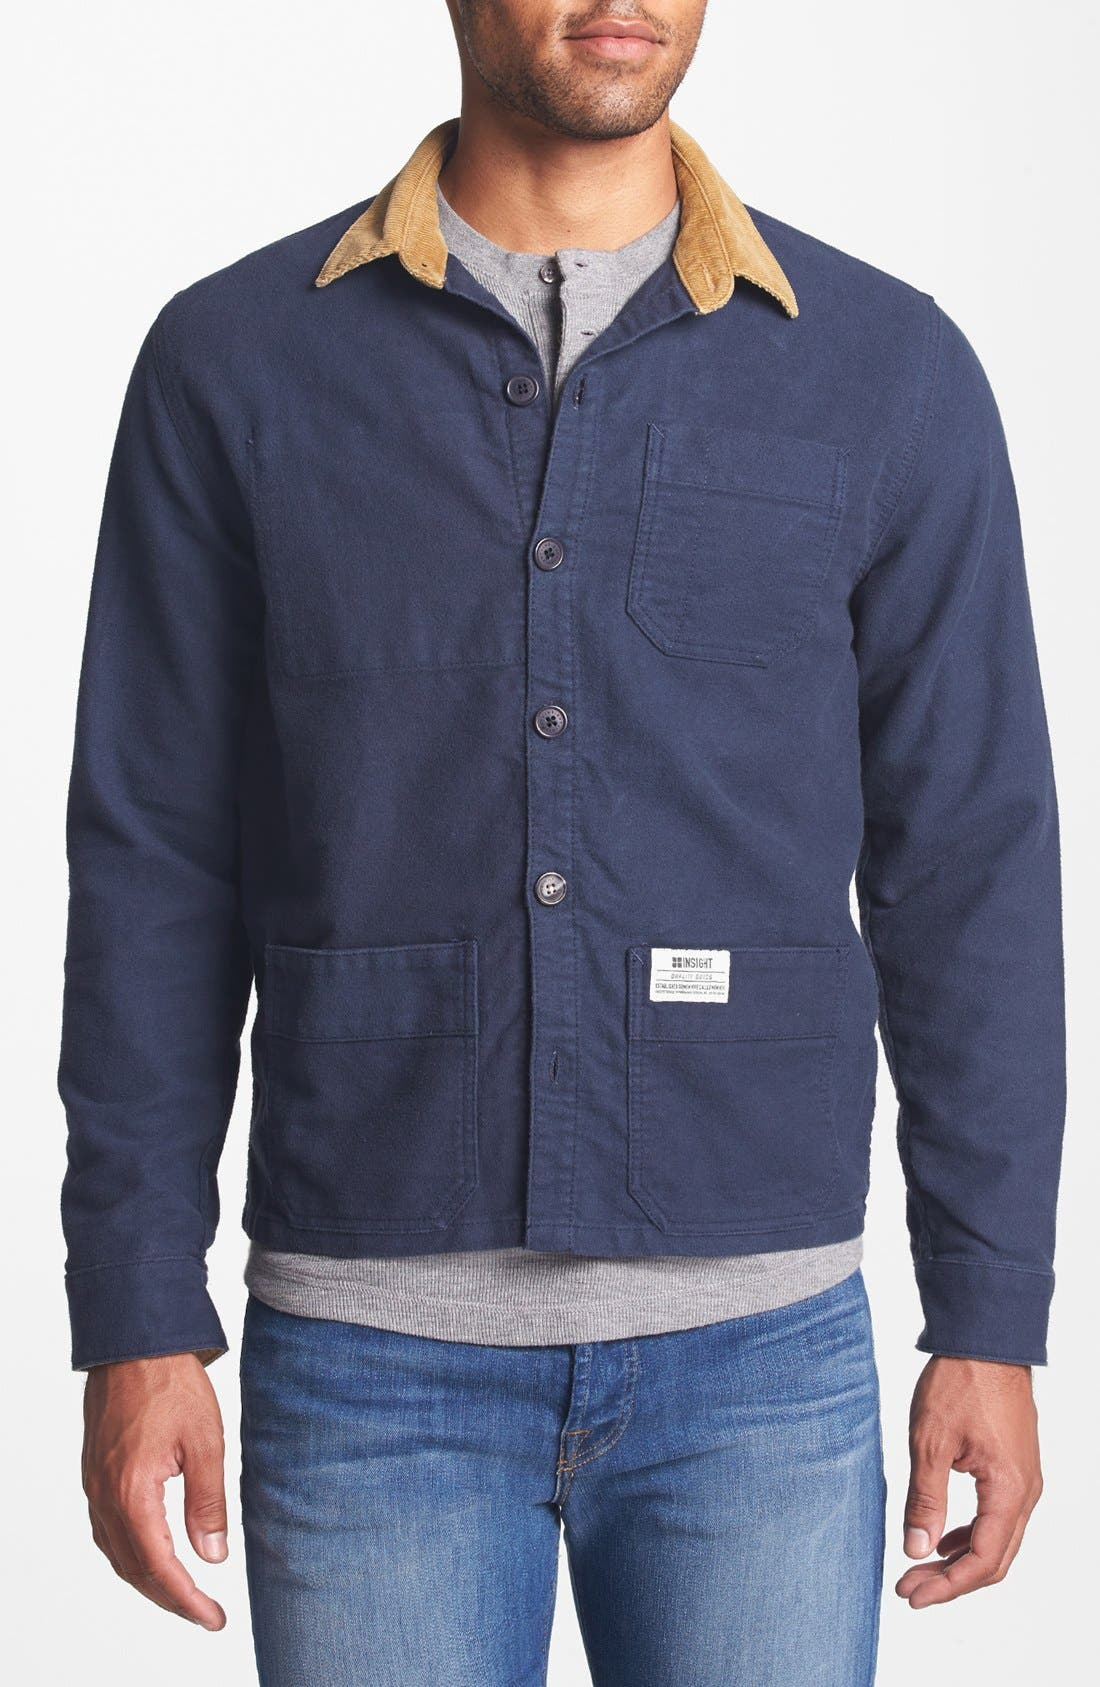 Alternate Image 1 Selected - Insight 'Live Well' Work Shirt